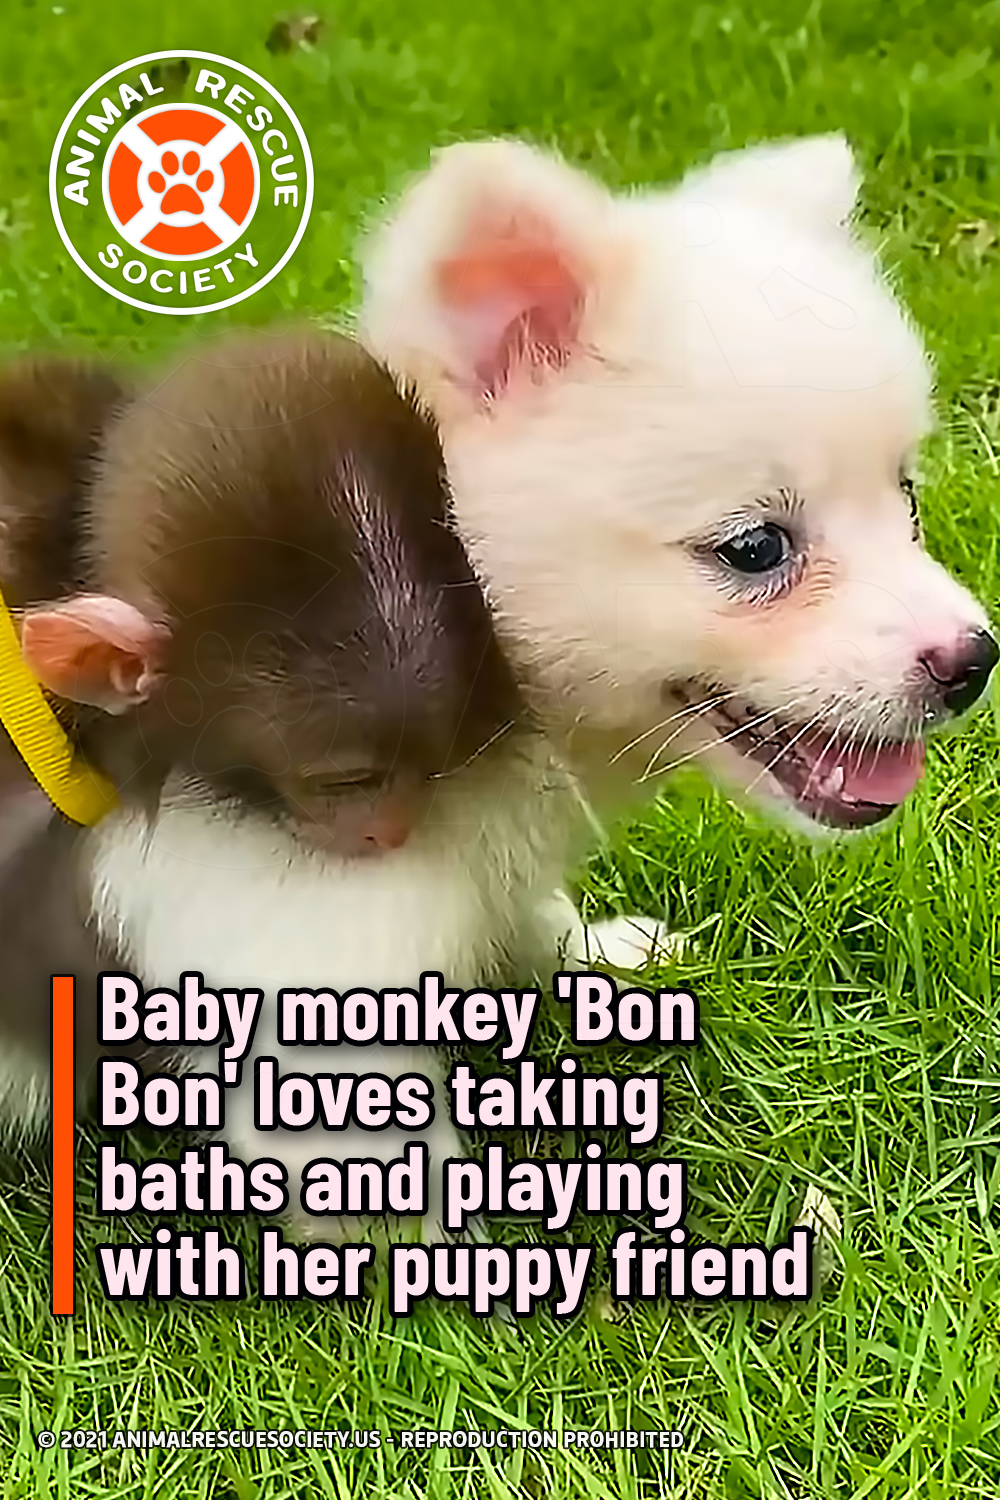 Baby monkey \'Bon Bon\' loves taking baths and playing with her puppy friend